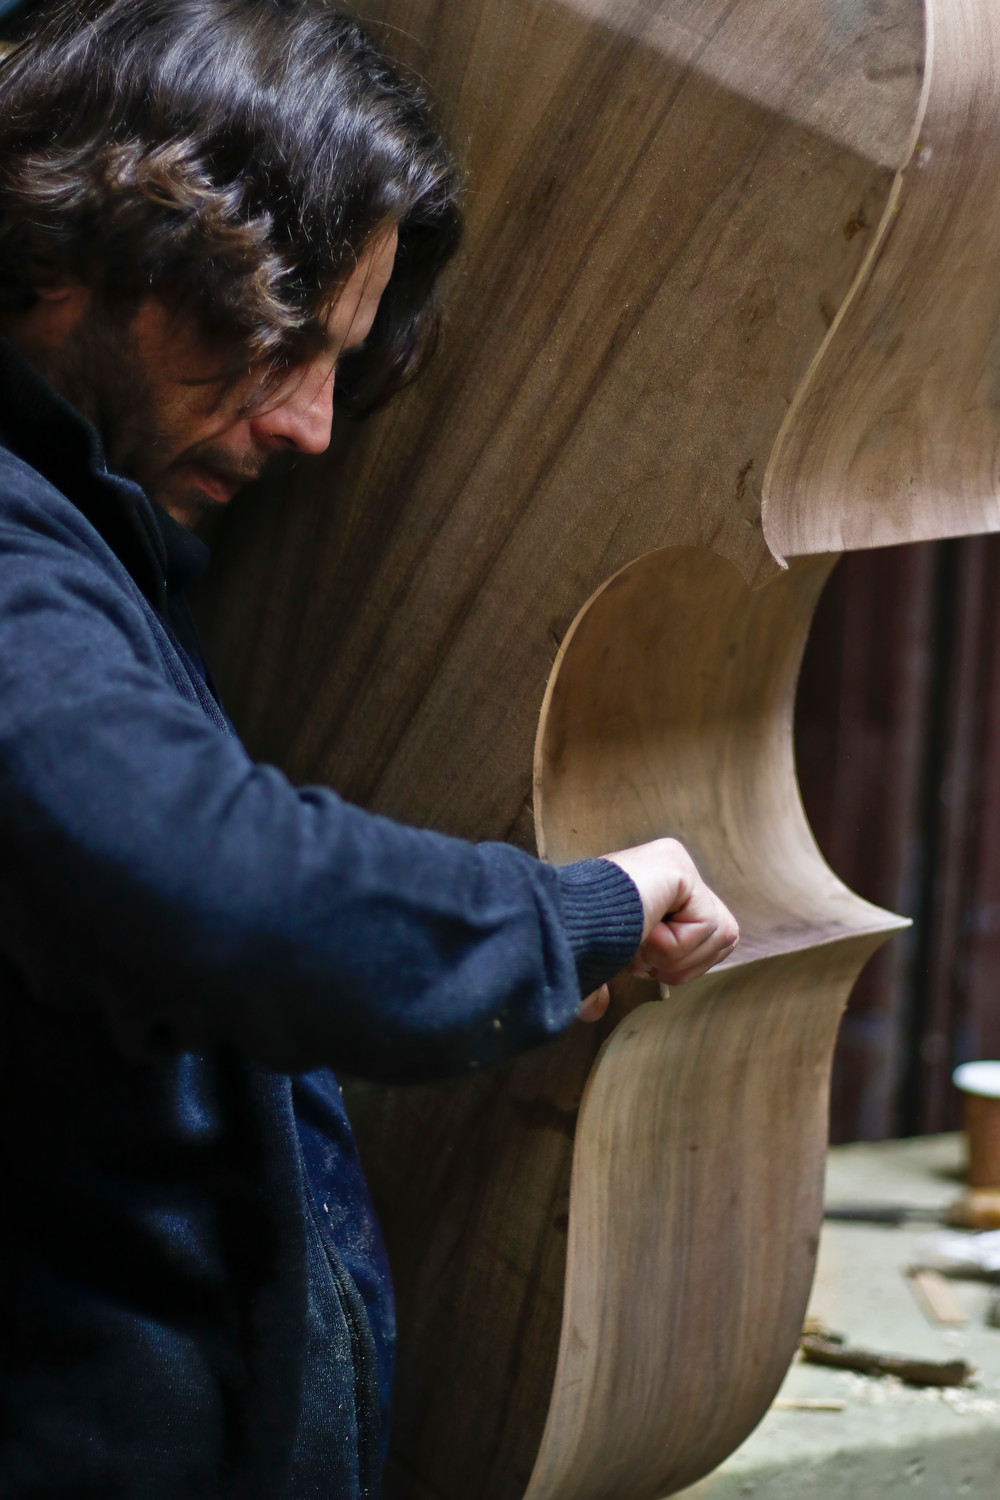 Using a chisel, Simone Diana defined the edges of a new Fendt model bass made of willow bark.